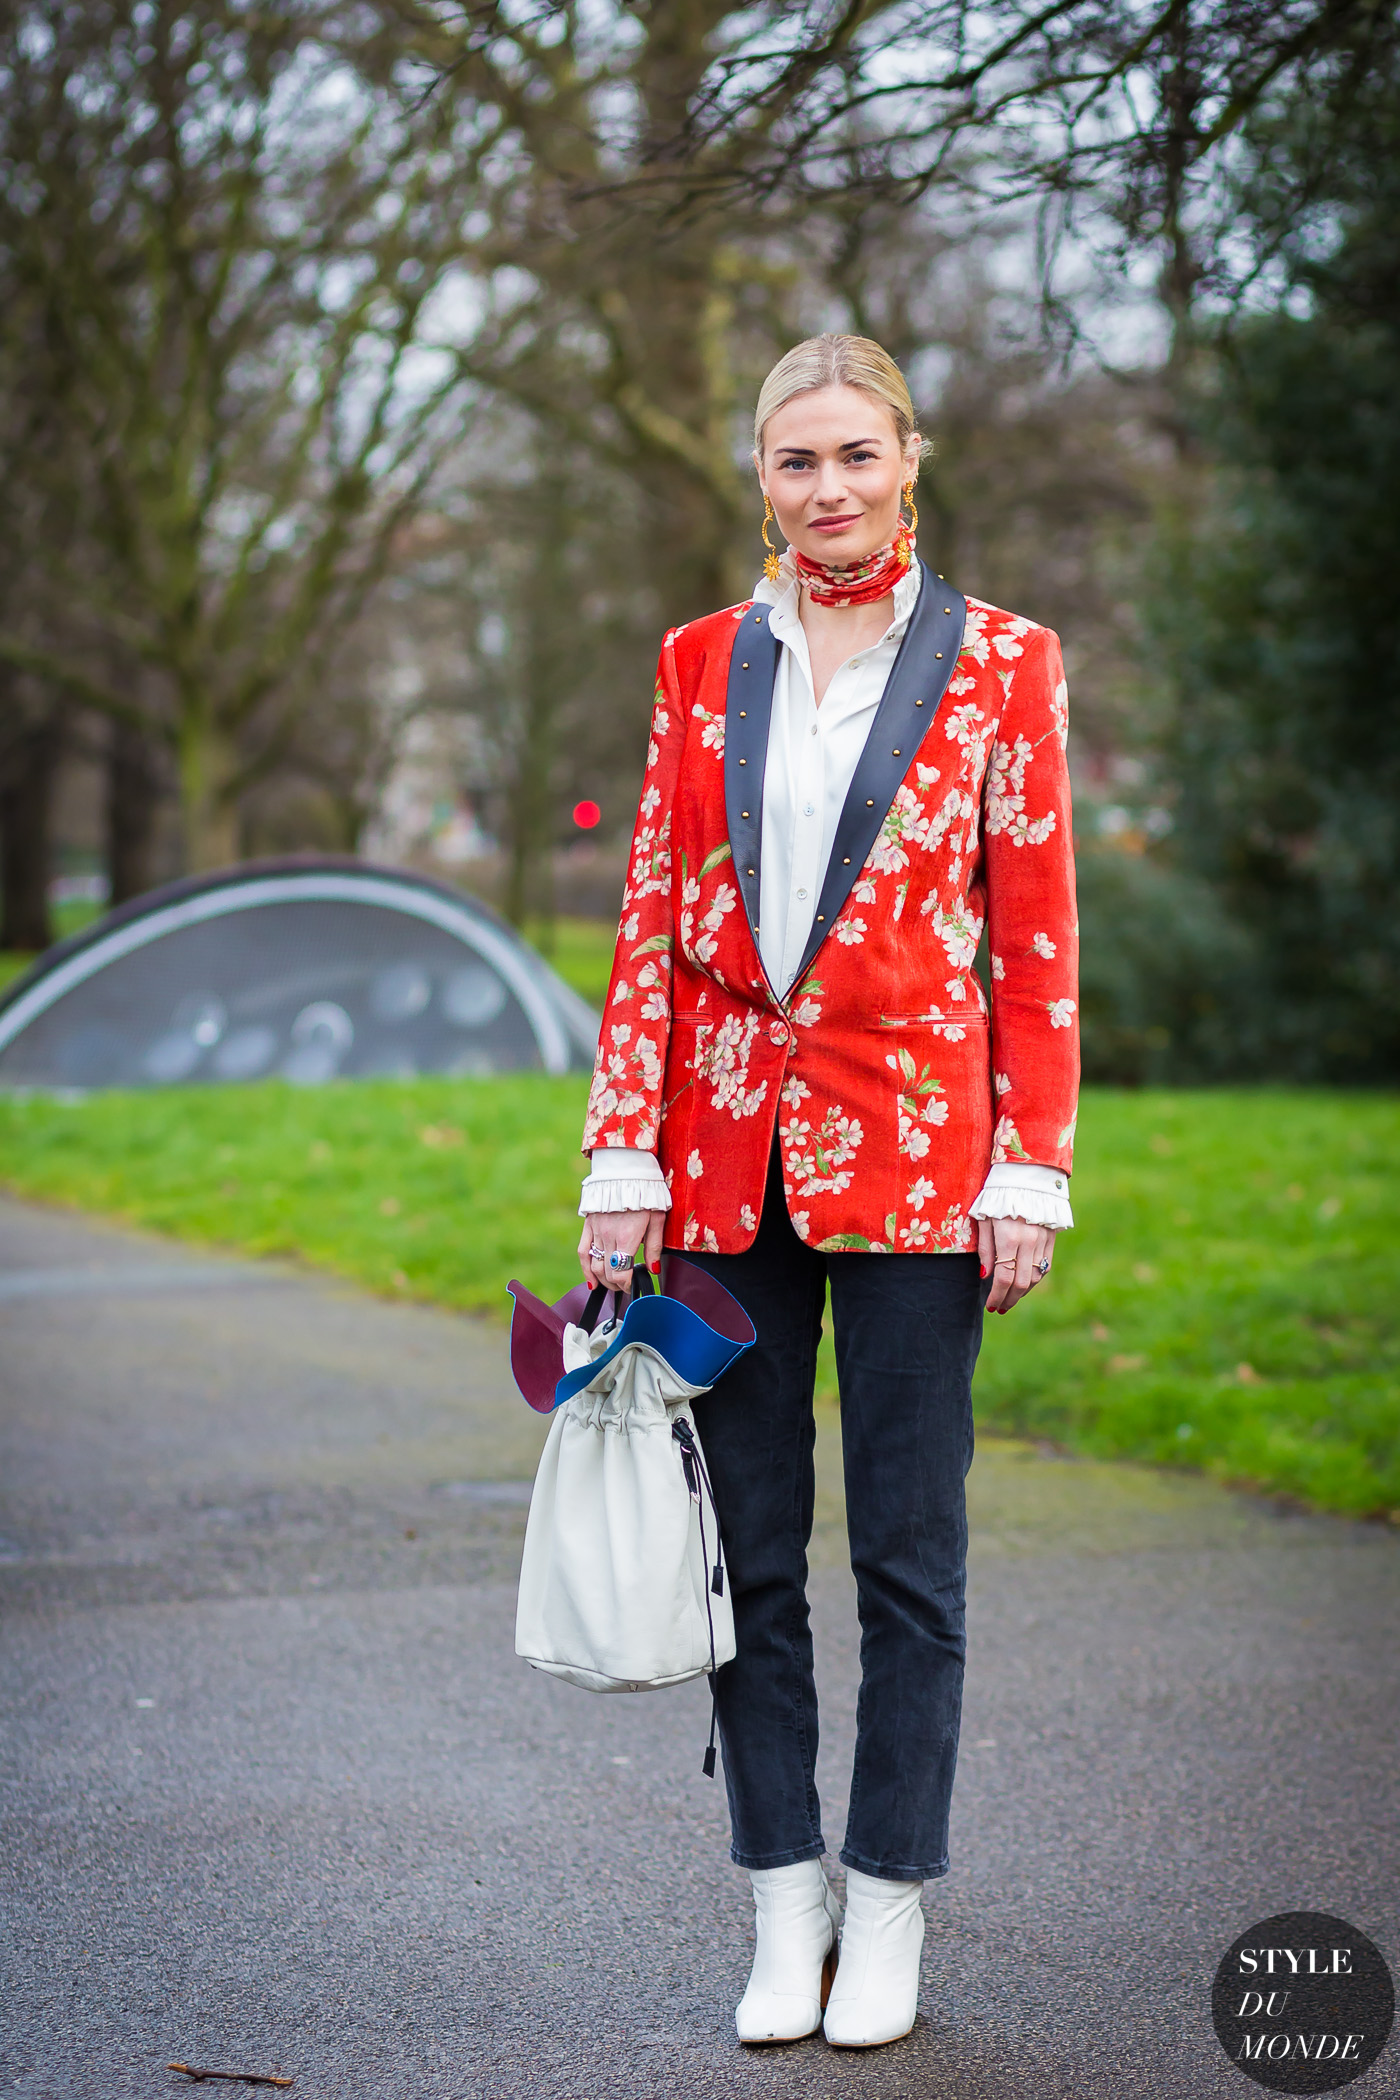 Pandora Sykes Street Style Street Fashion Streetsnaps by STYLEDUMONDE Street Style Fashion Photography